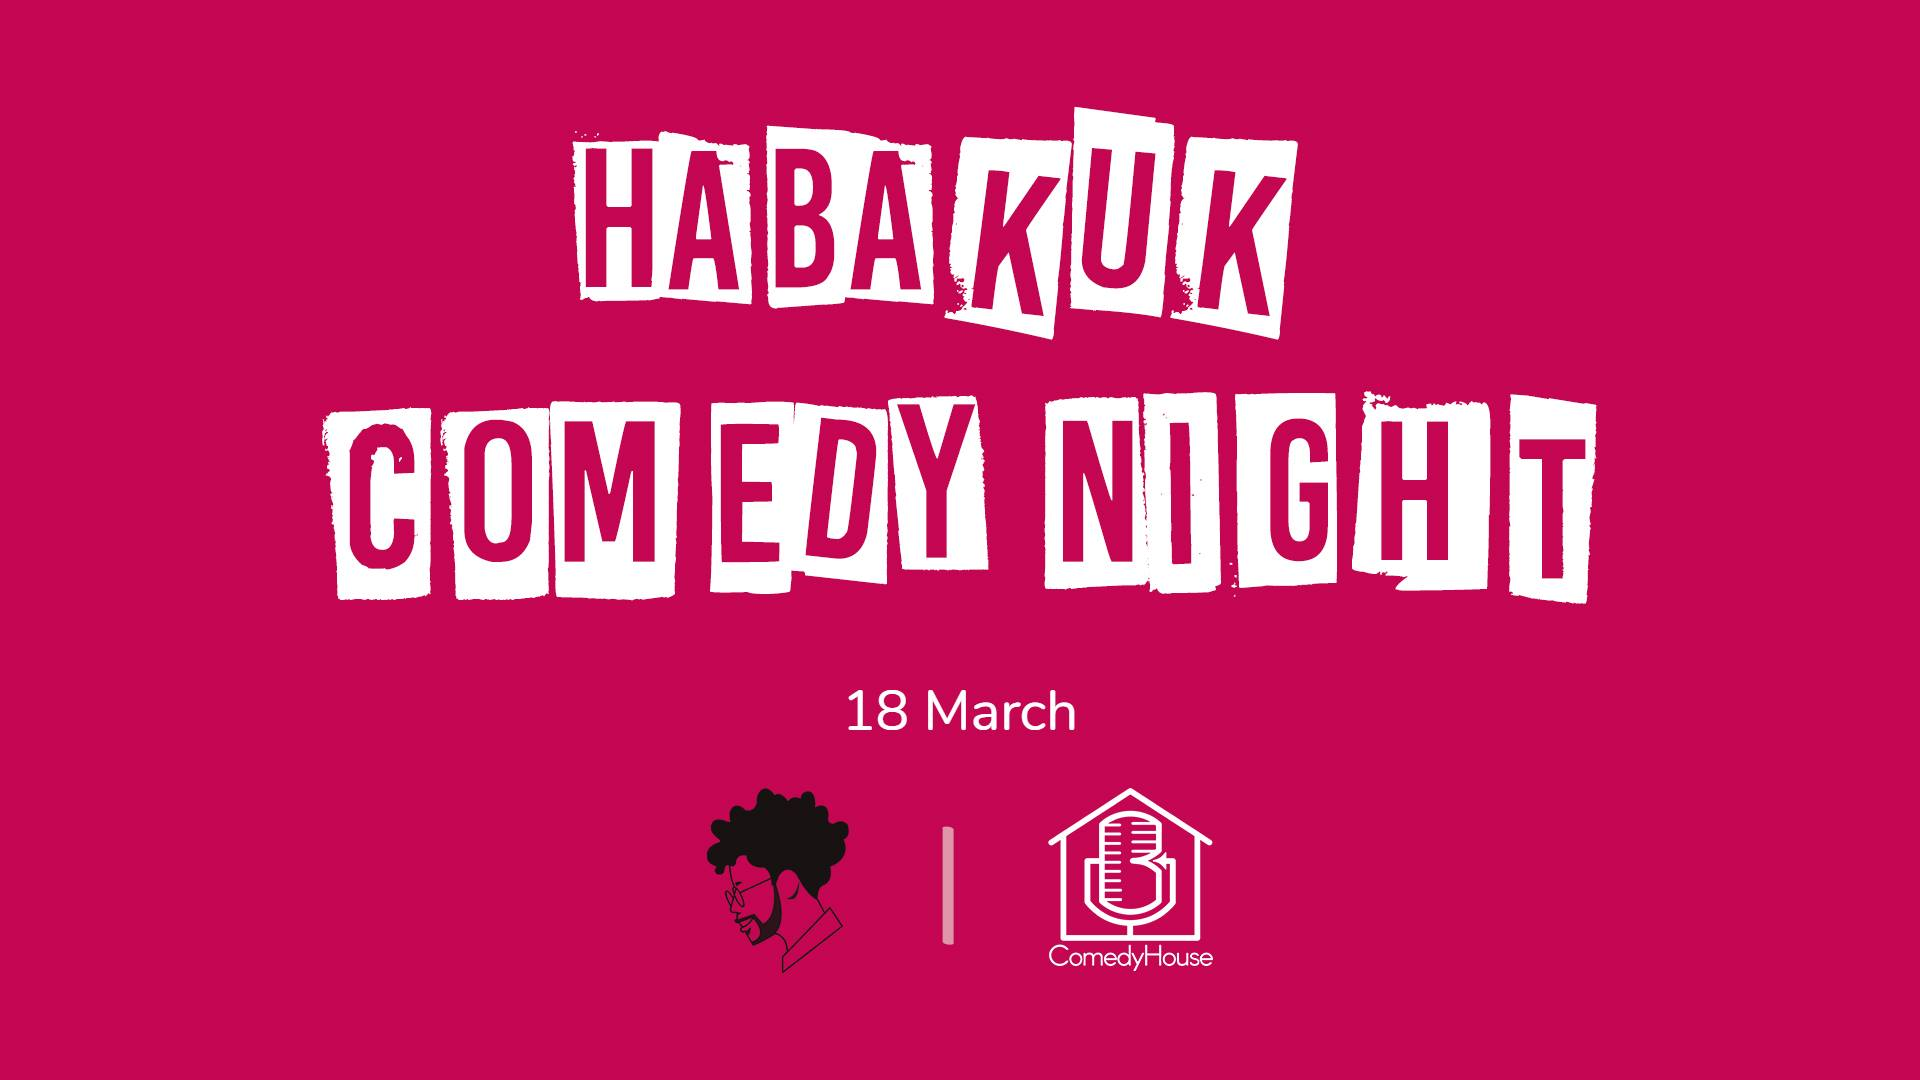 Habakuk Comedy Night